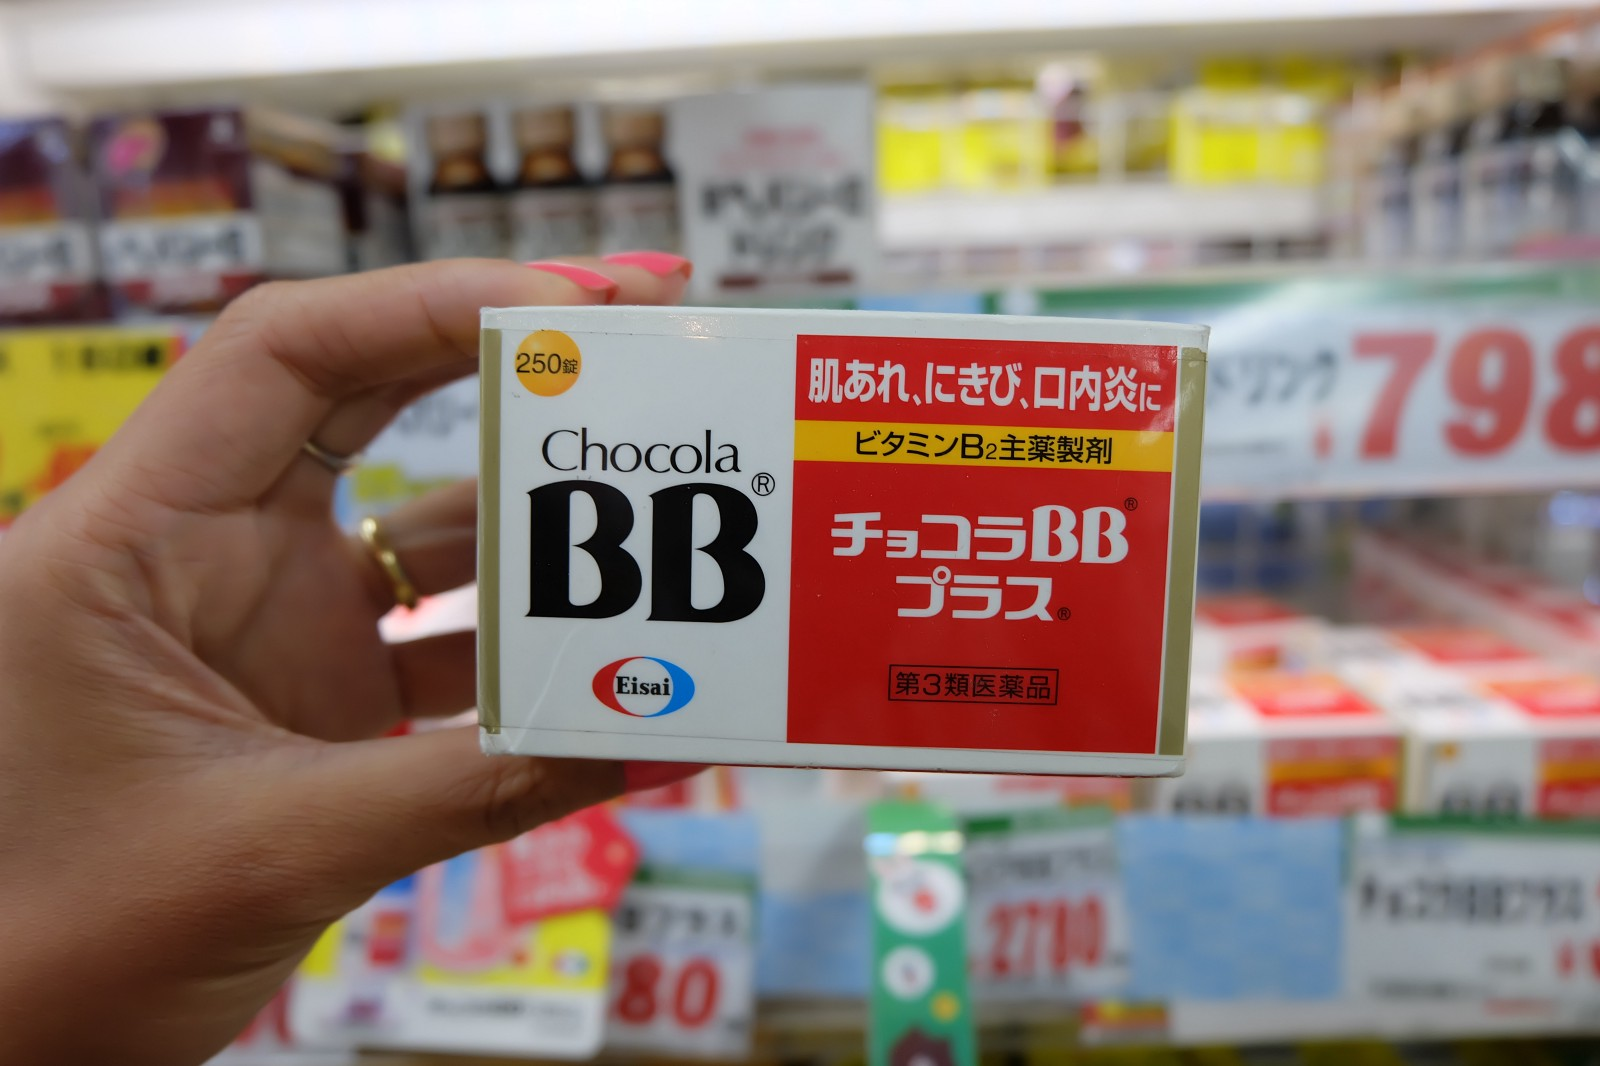 Chocola BB: Vitamin supplements